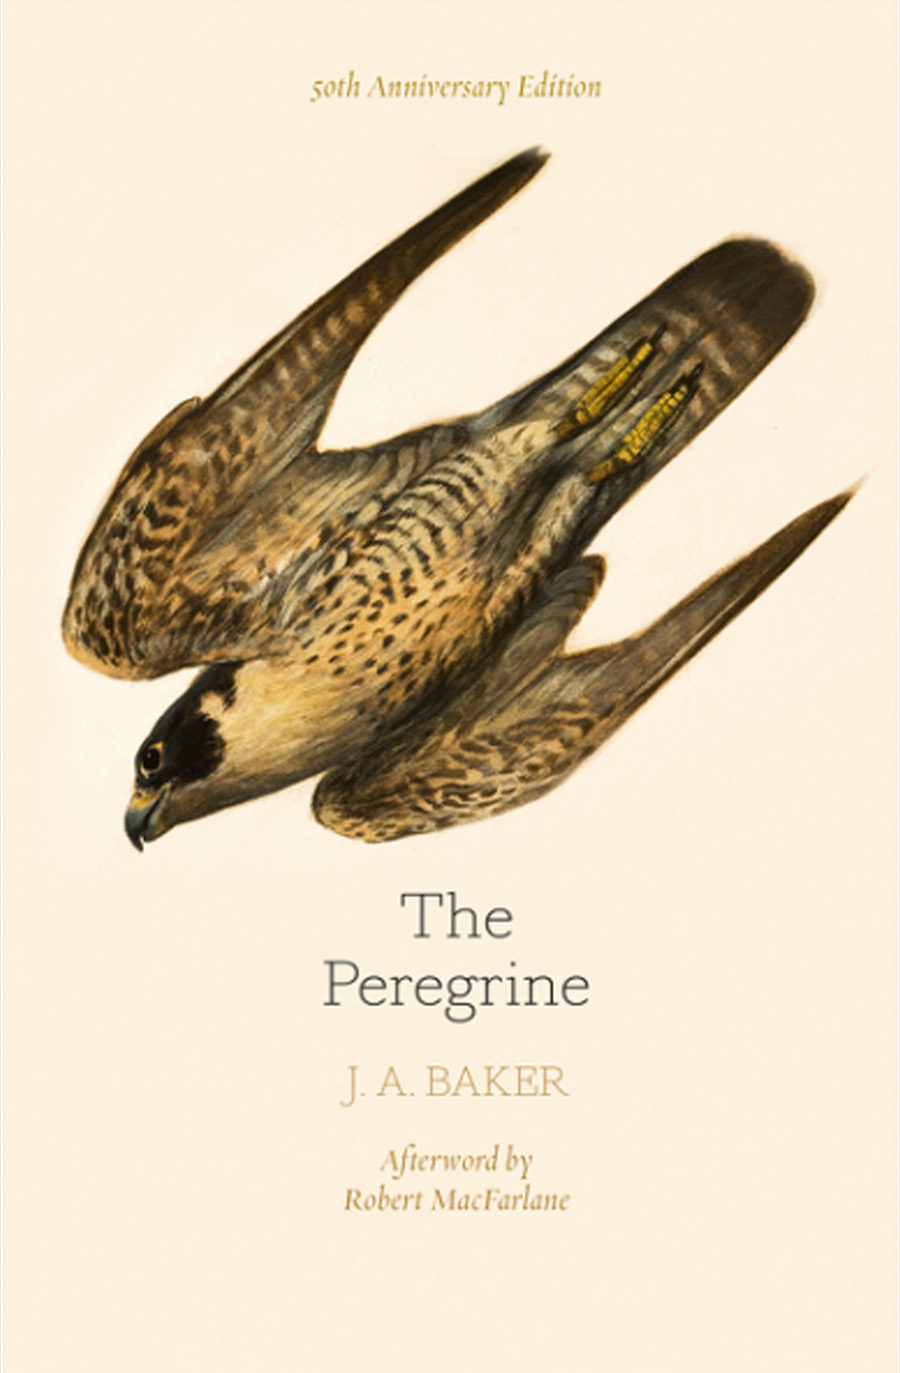 J.A. Baker - The Peregrine